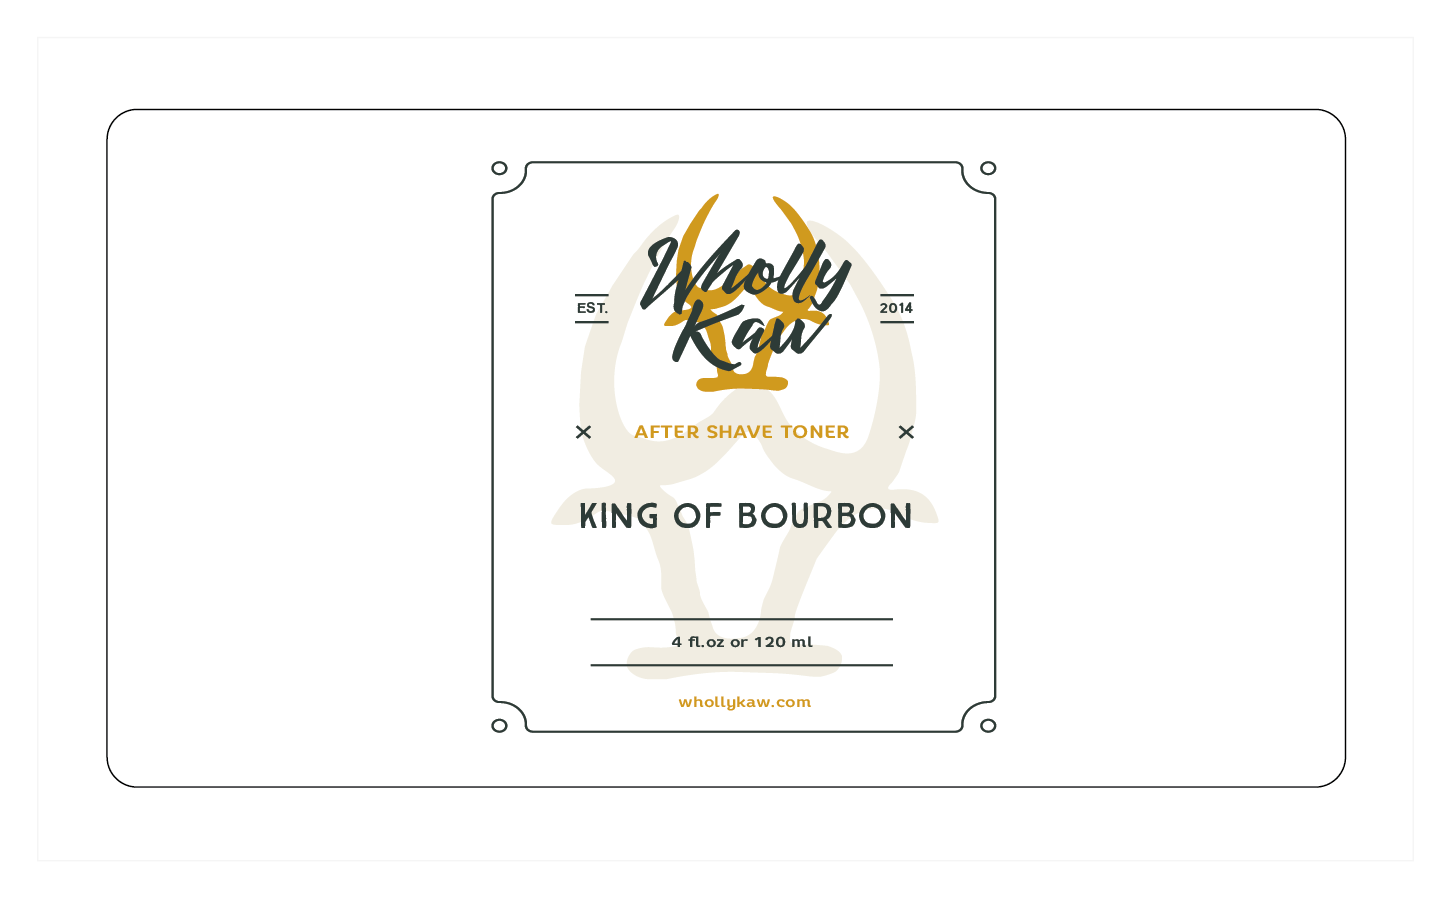 Wholly Kaw - King of Bourbon - Toner image